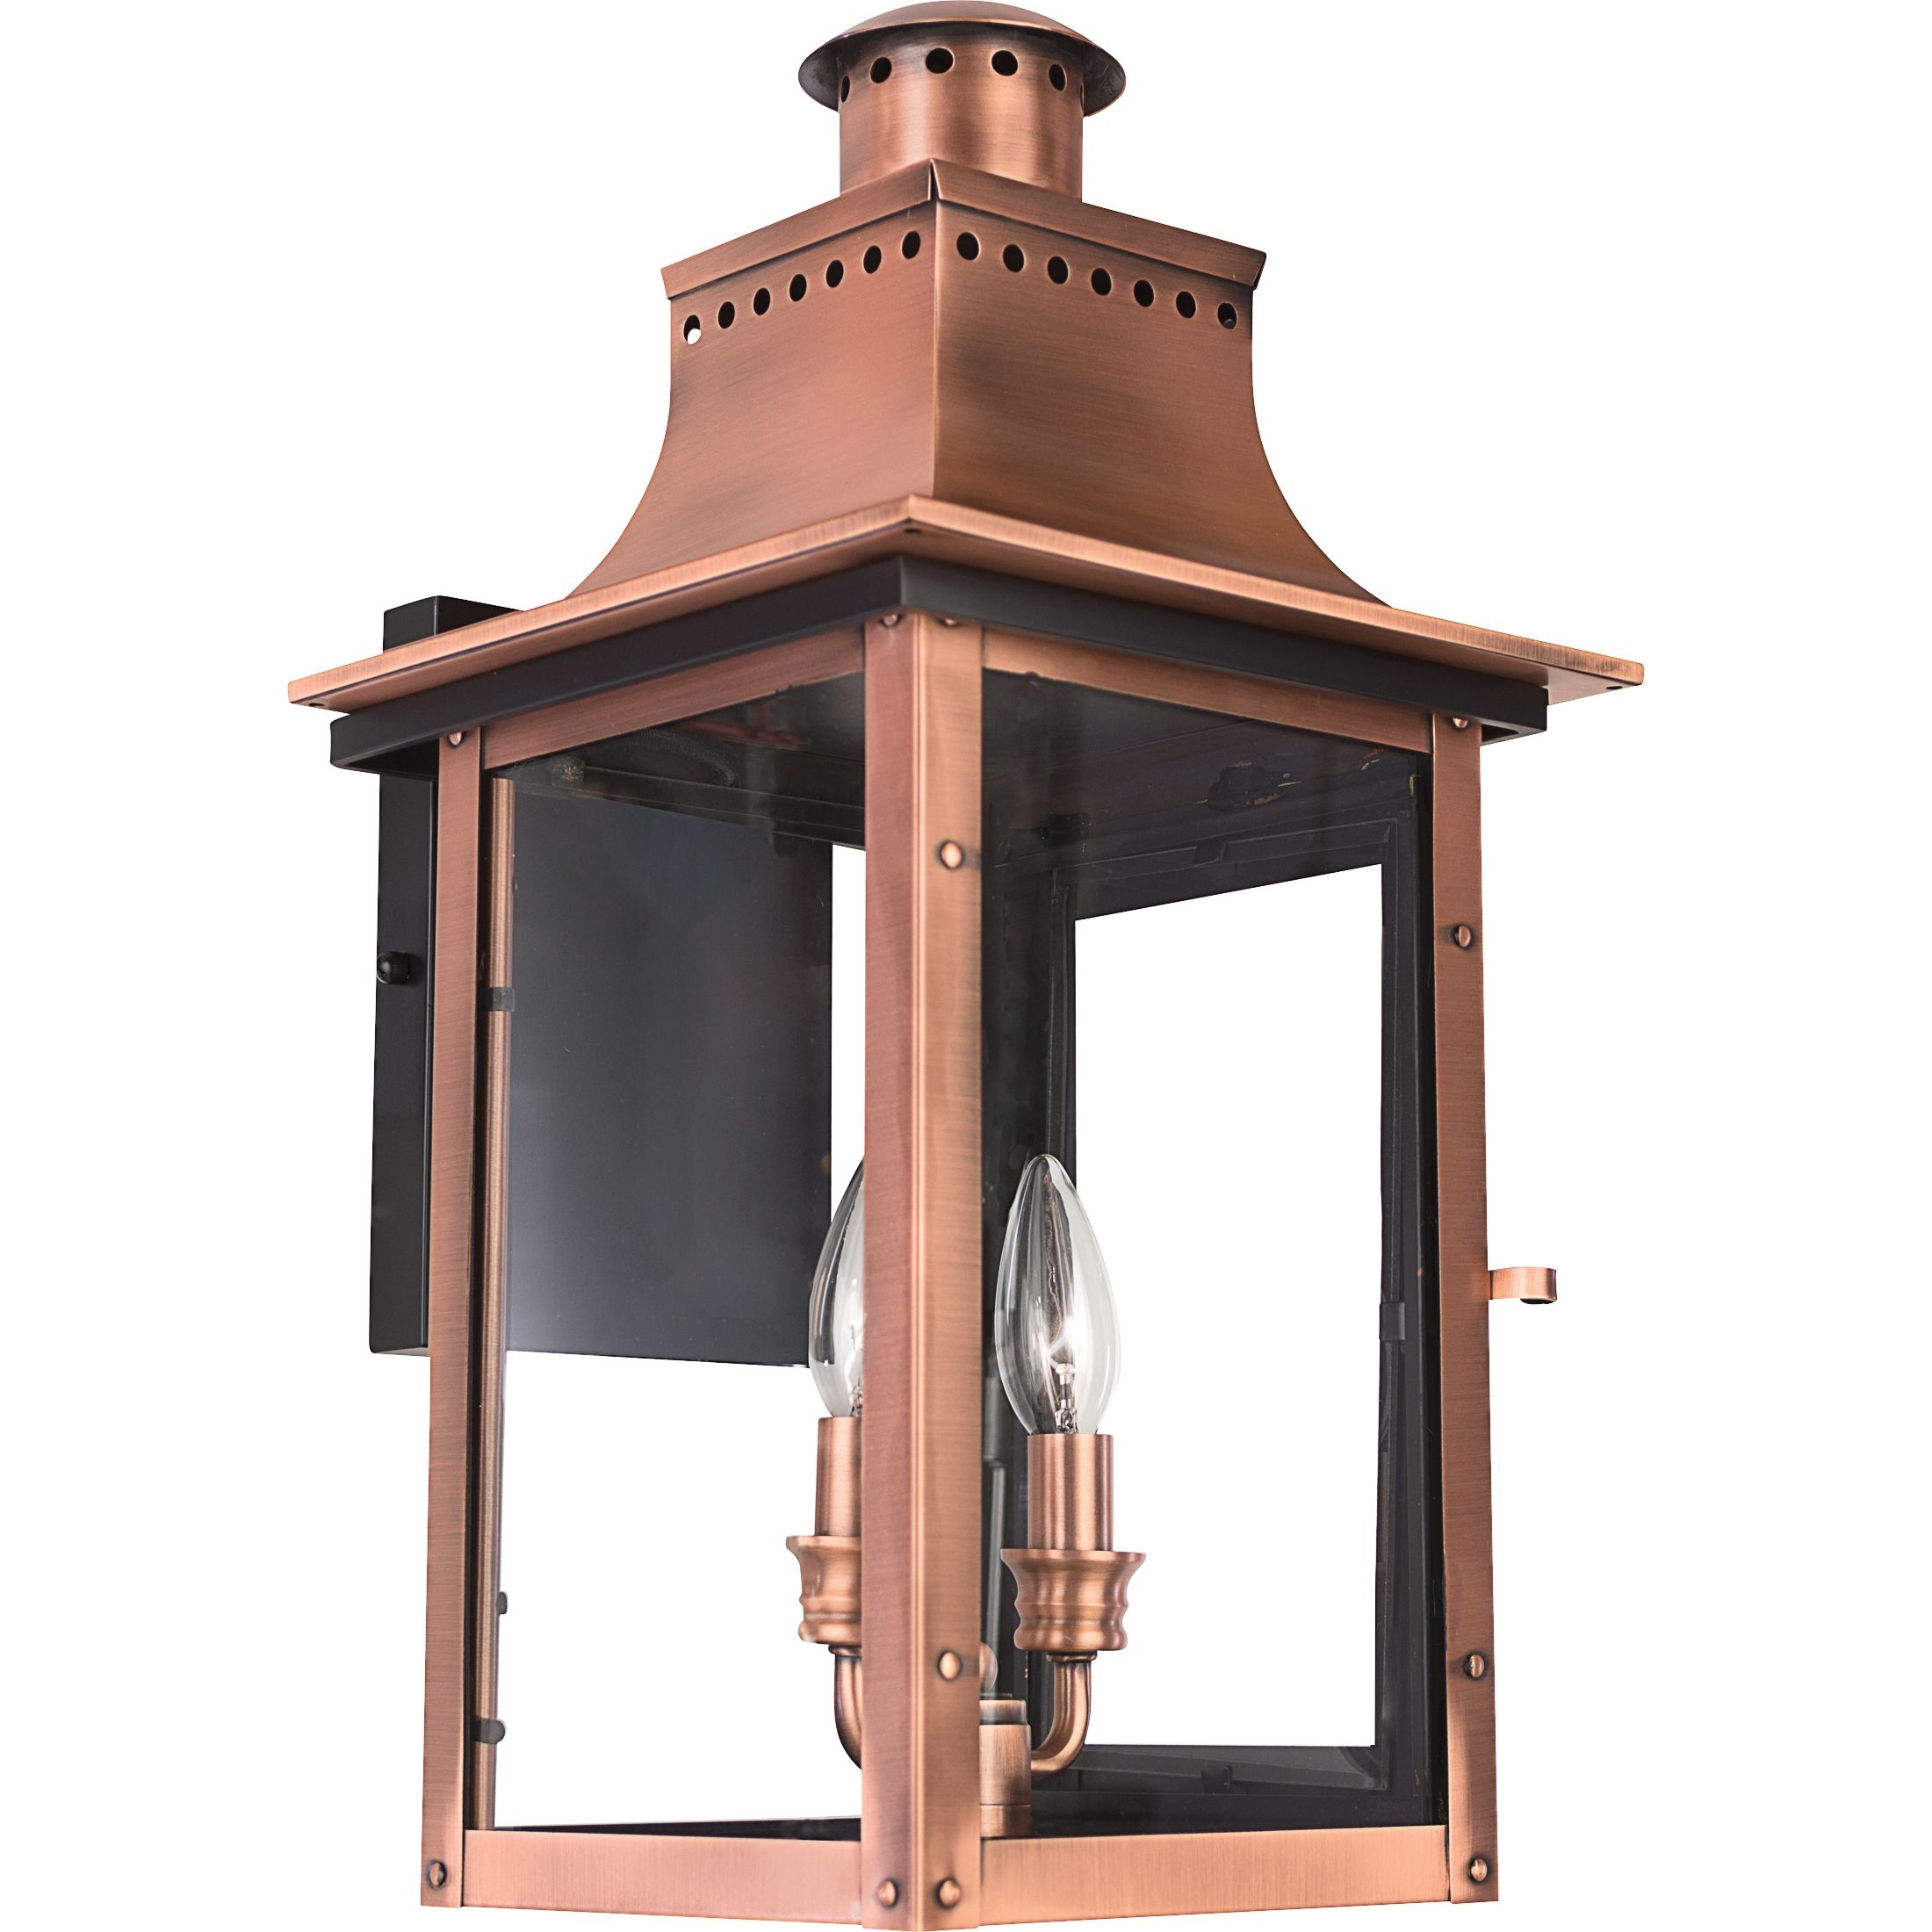 Chalmers Outdoor Lantern | Quoizel in Copper Outdoor Lanterns (Image 2 of 20)